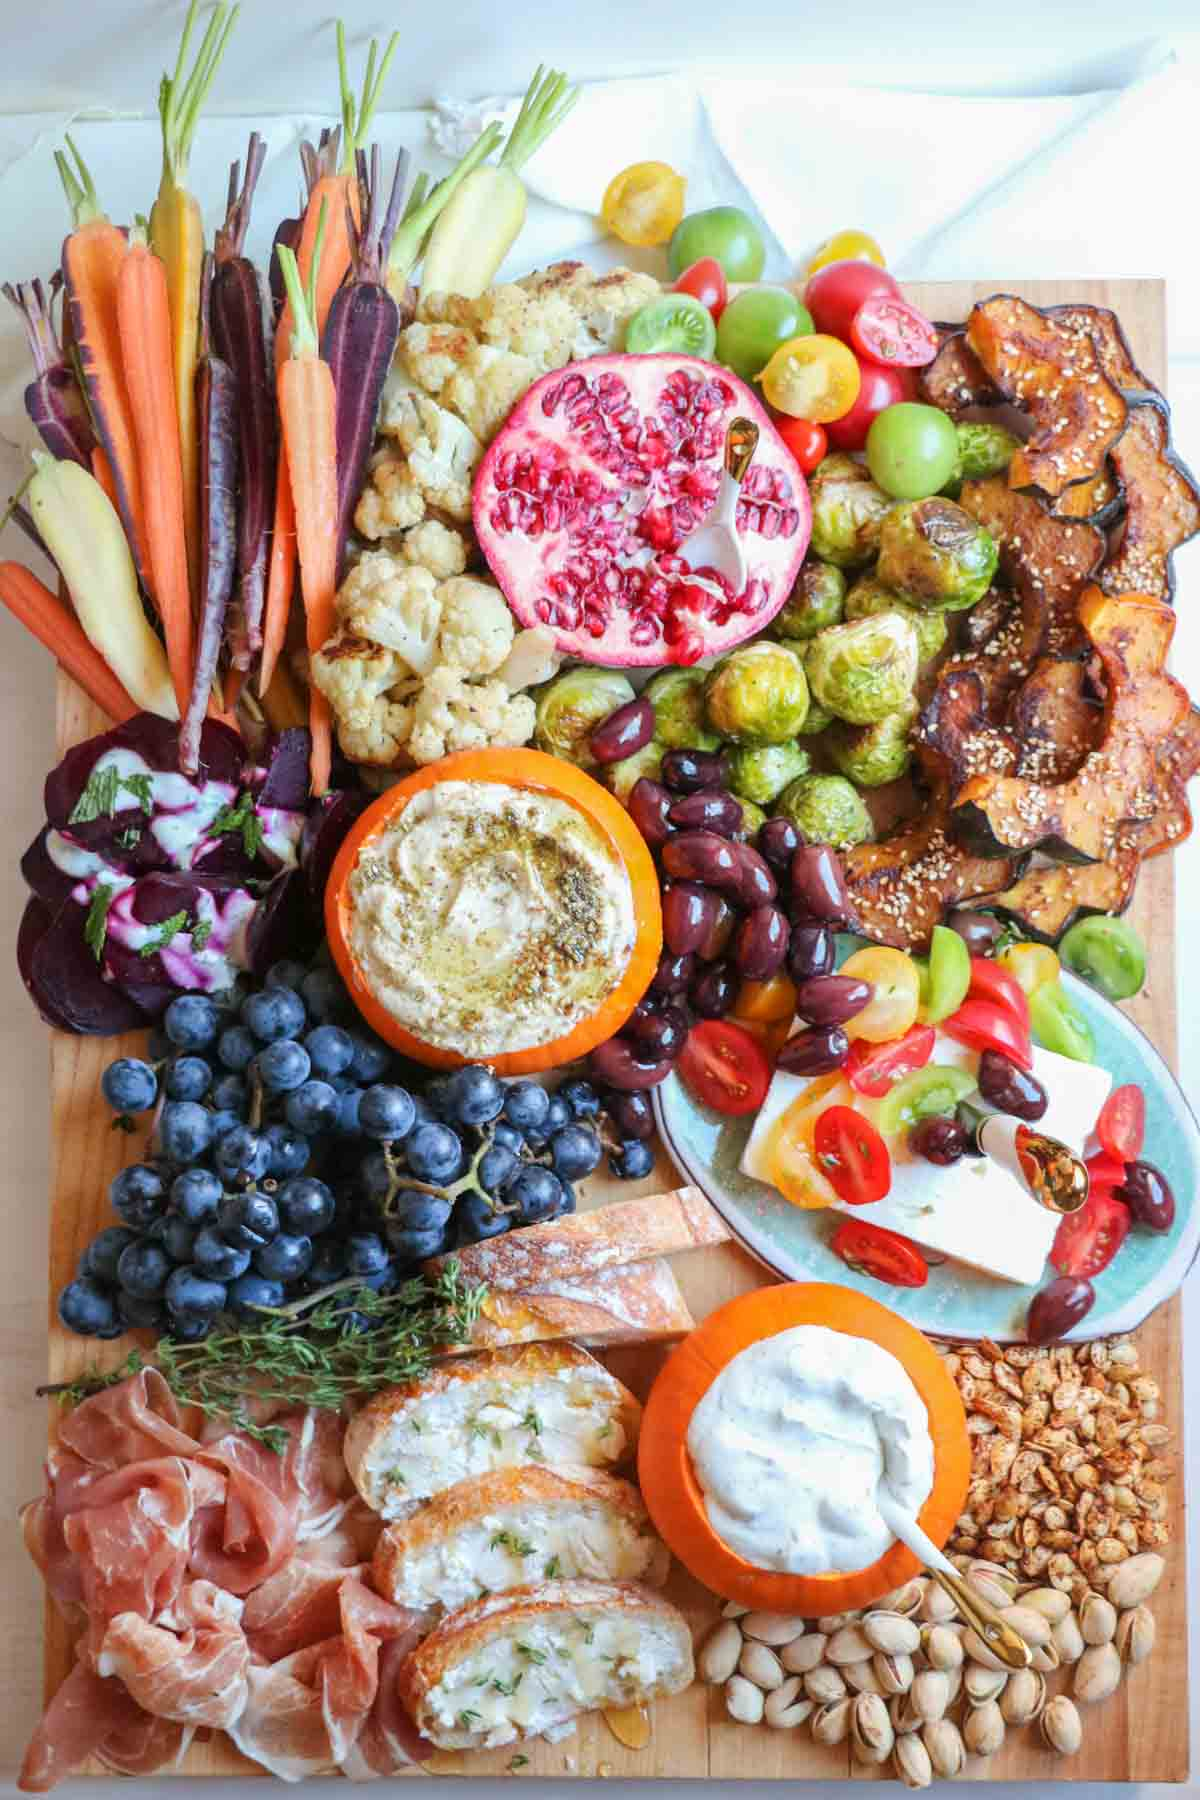 The ultimate fall mezze platter with zatar spiced hummus, roasted acorn squash, thyme honey goat cheese crostini, and more! A healthy party pleaser. |abraskitchen.com